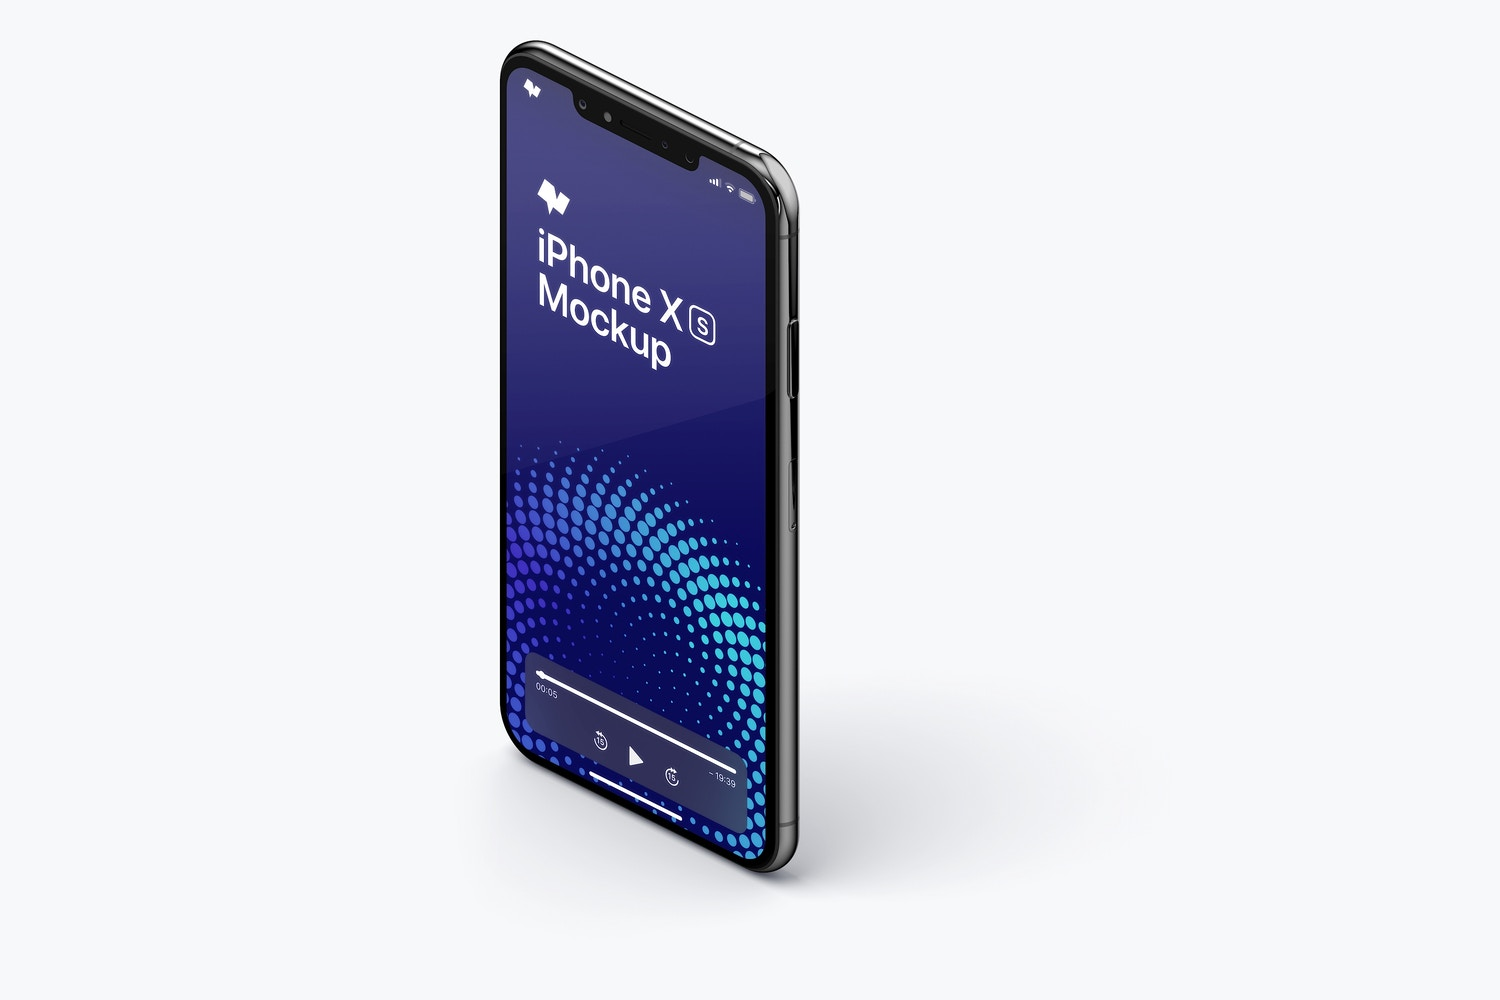 iPhone XS Max Mockup, Isometric Left View 02 by Original Mockups on Original Mockups